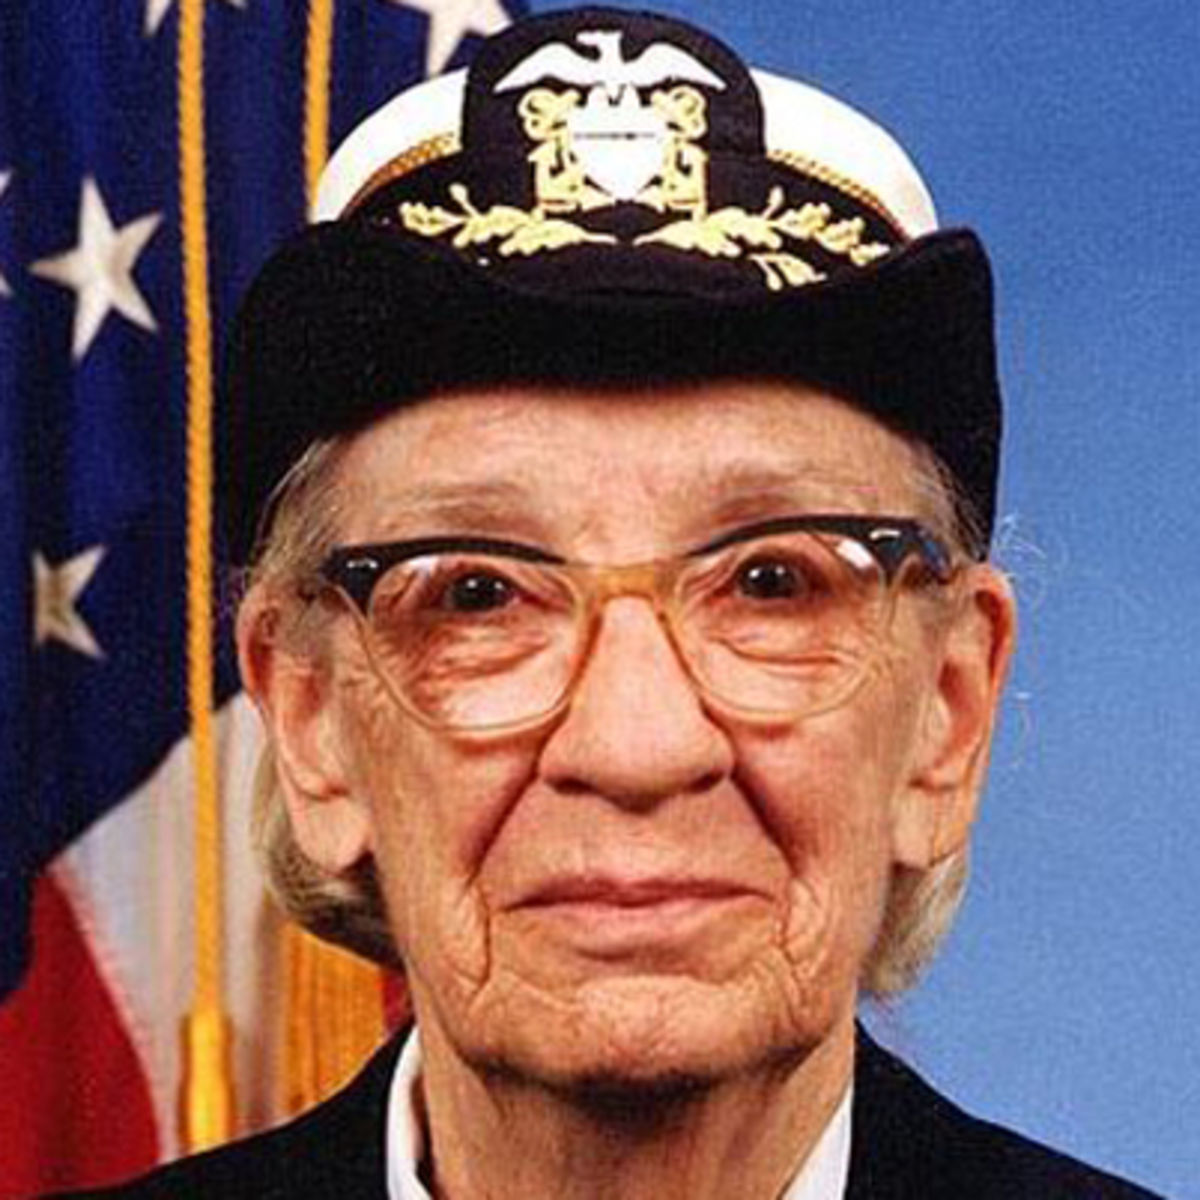 a biography of grace murray hopper Grace brewster murray hopper (née murray december 9, 1906 - january 1, 1992) was an american computer scientist and united states navy rear admiral.